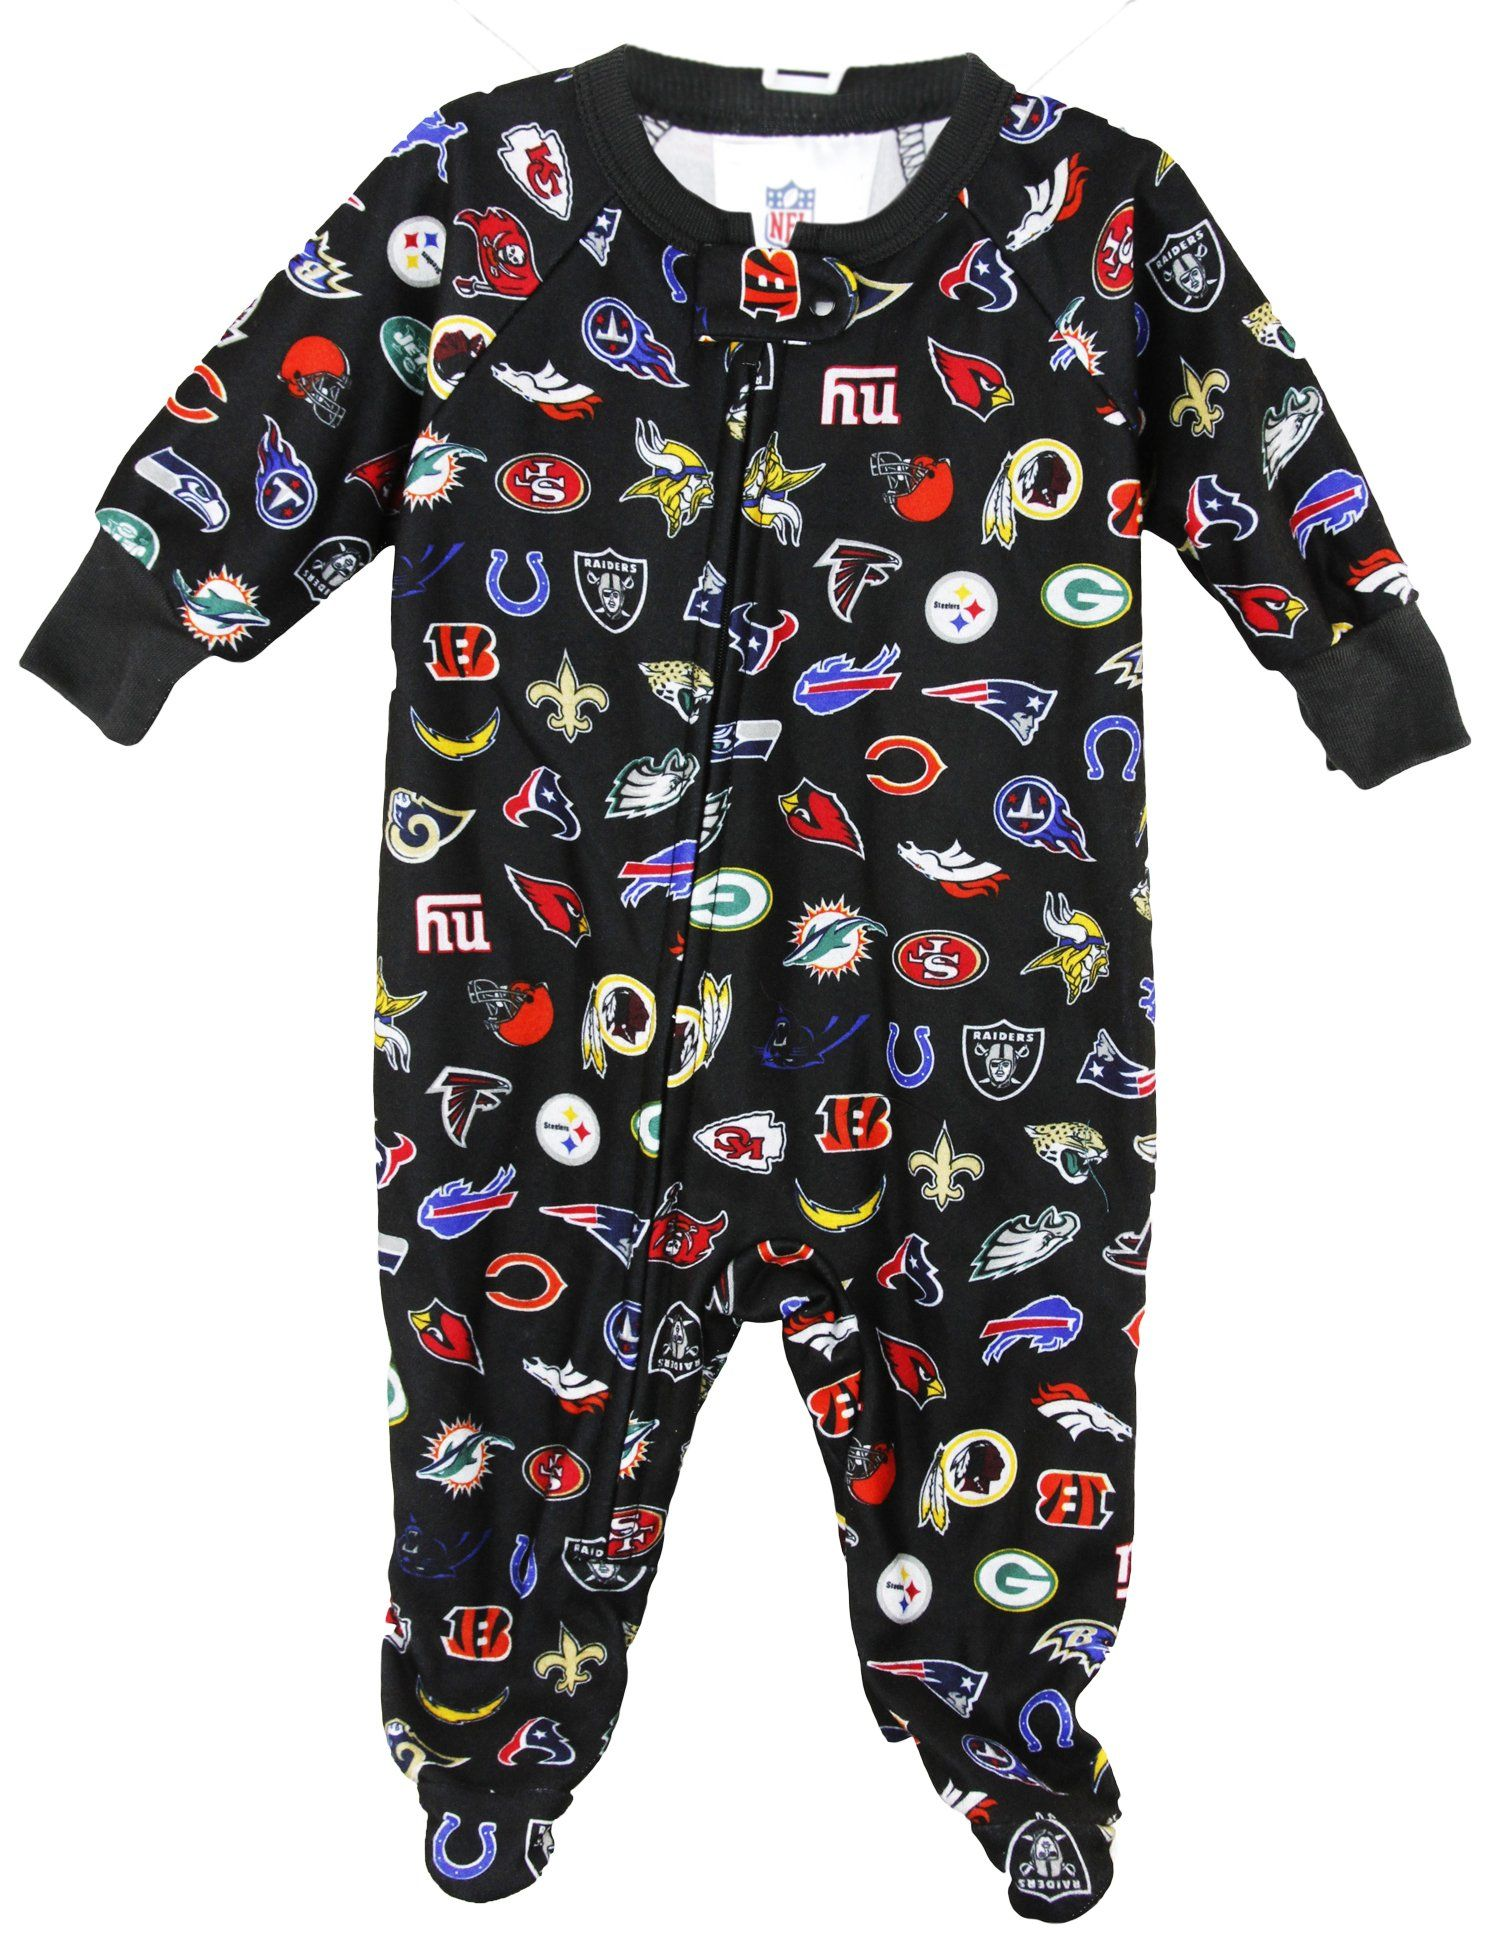 efcafab3a8 Gerber NFL Football Infant Baby Printed Blanket Footed Football Sleeper -  Black